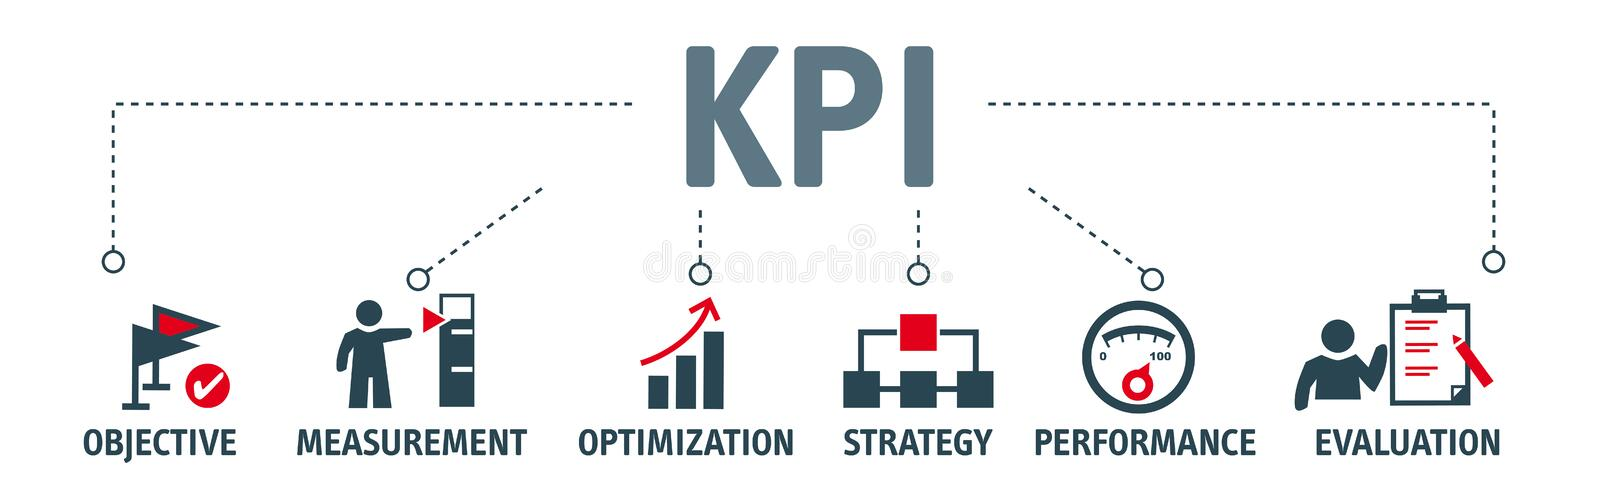 KPIs Evaluate The Success Of An Organization Or Of A Particular - how do you evaluate success